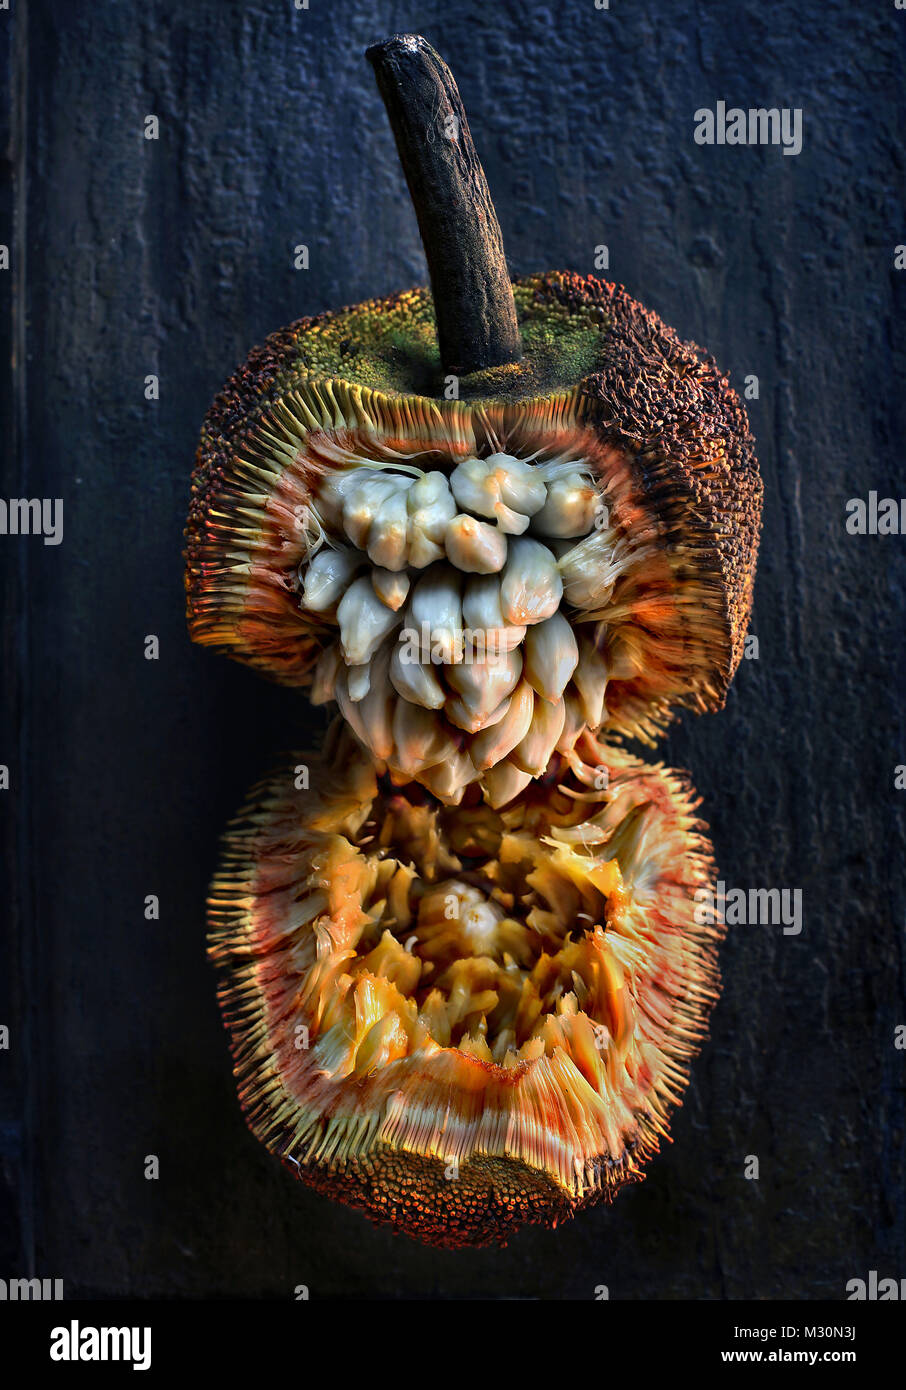 Marang fruit, Manila, Luzon Island, Philippines, Asia - Stock Image